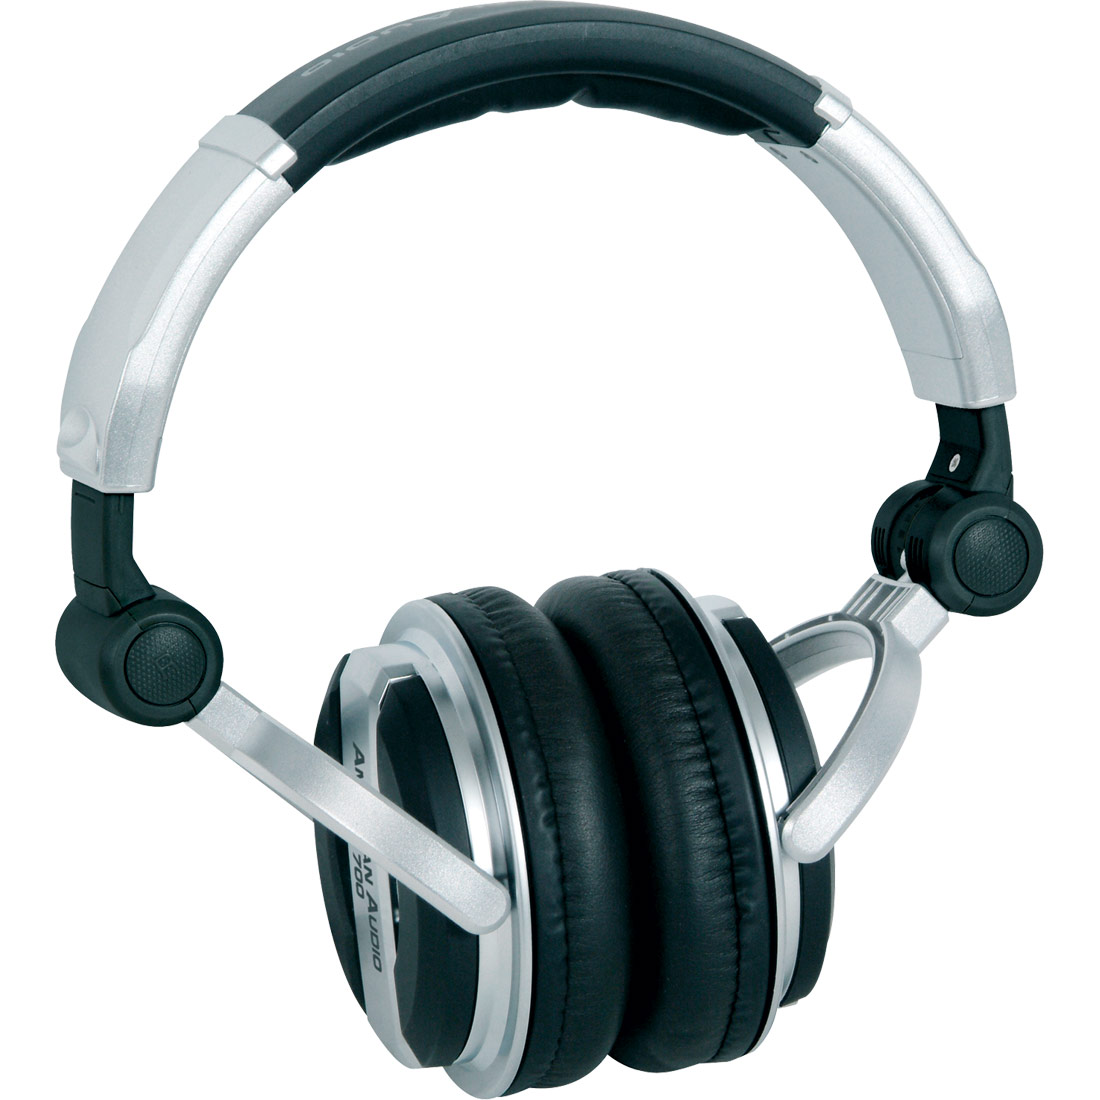 HP700 professional headphones